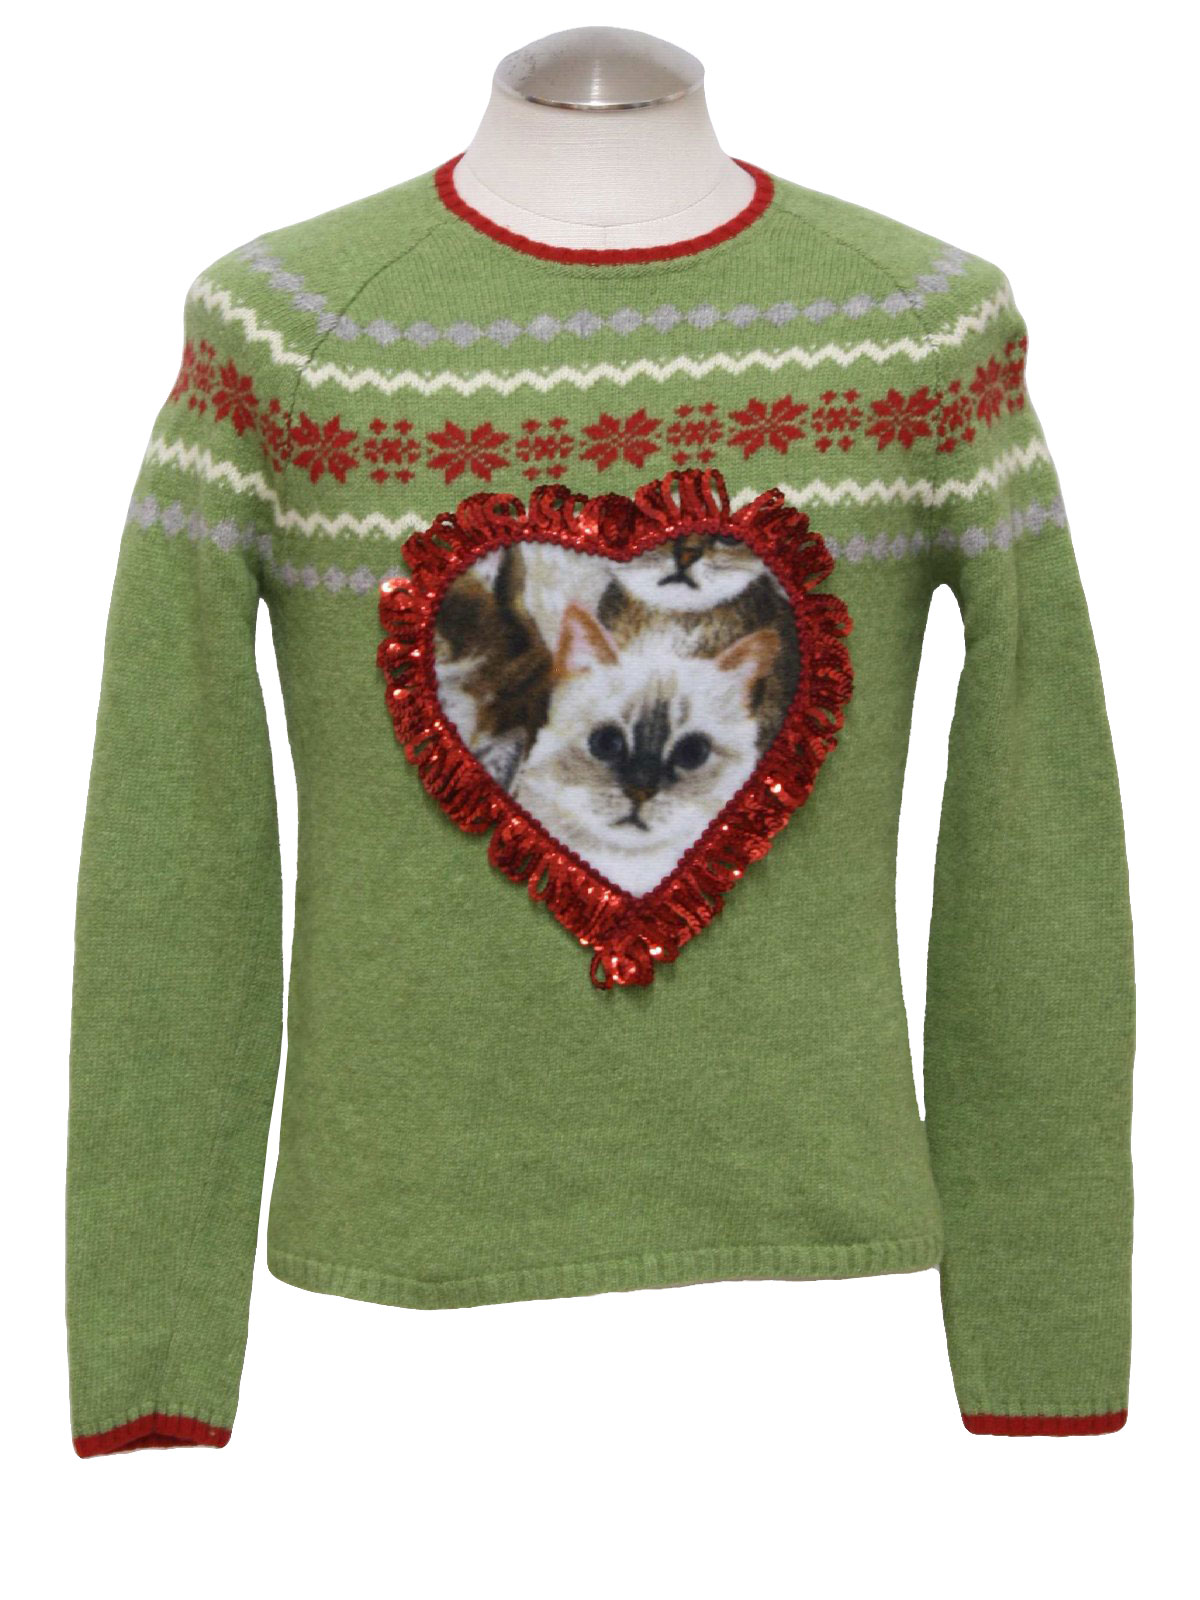 Womens/Girls Ugly Christmas Catmus Sweater: -Old Navy- Love ...